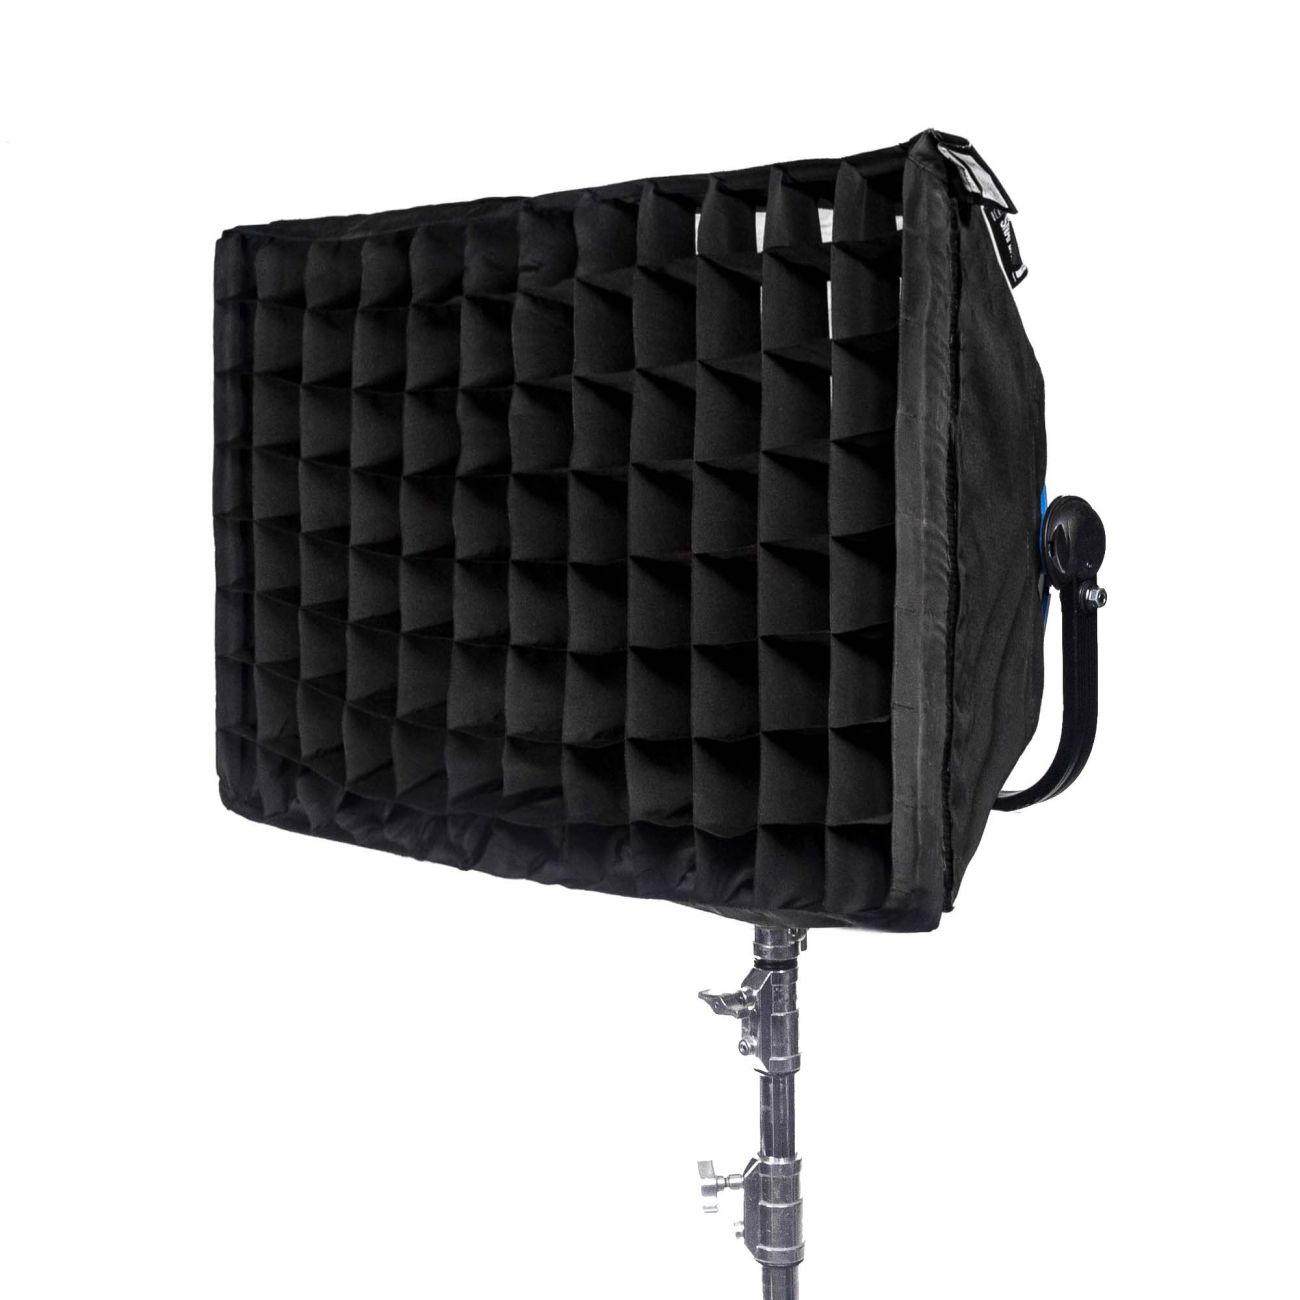 SnapGrid for Softbox SnapGrid S60